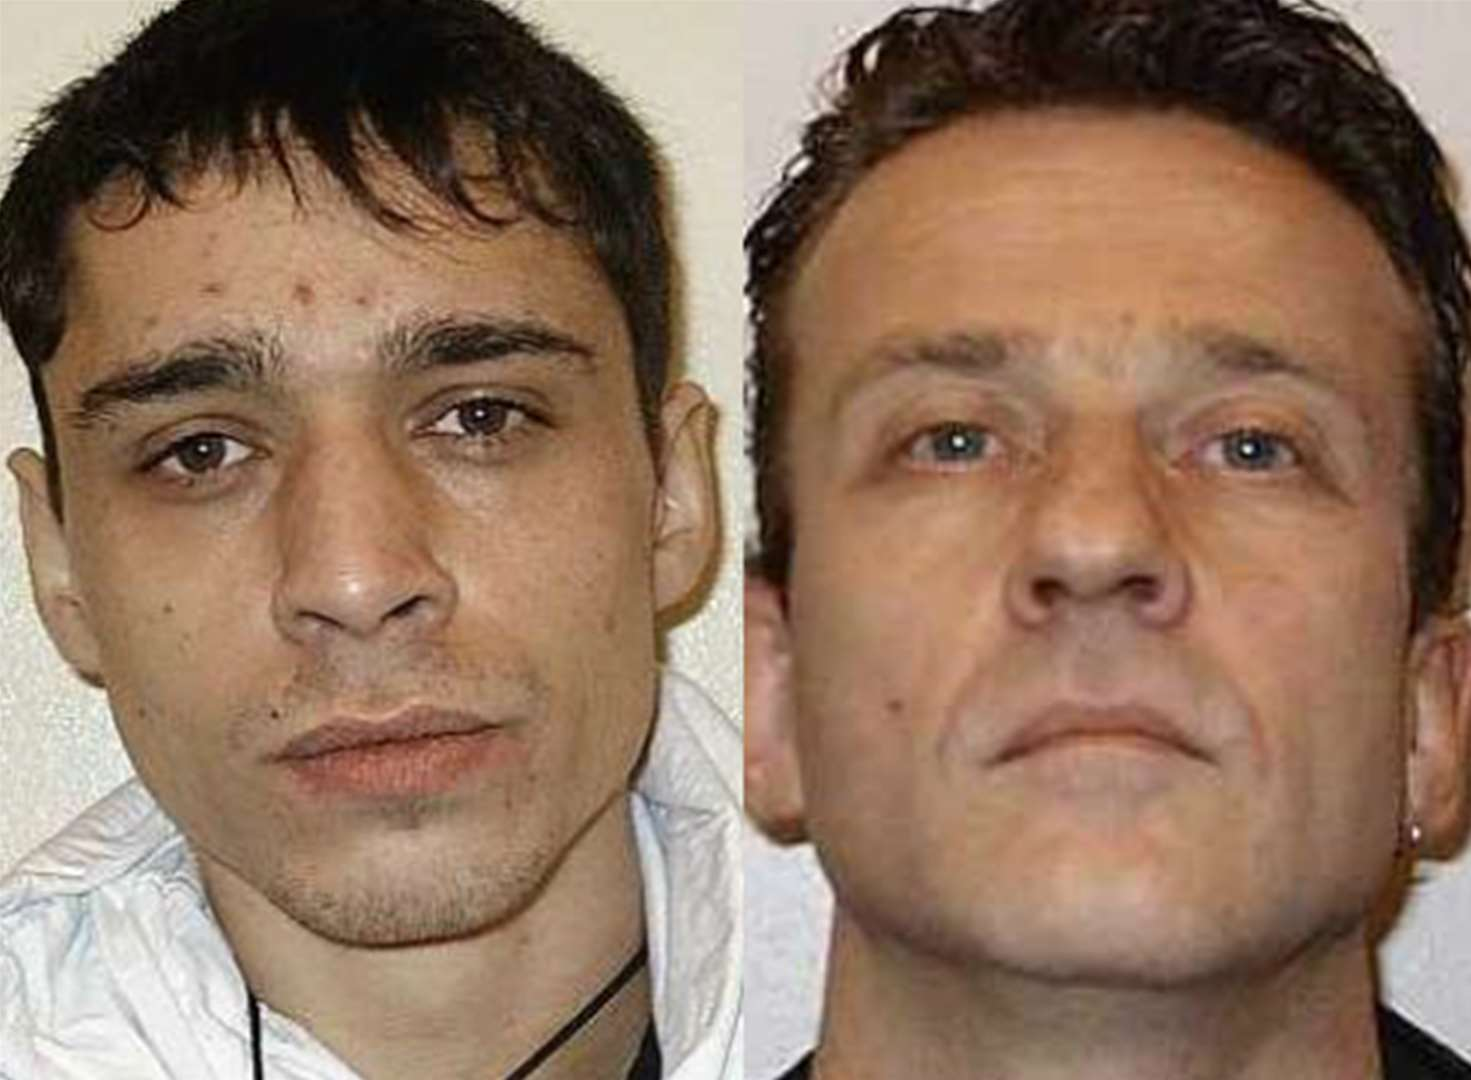 'Escaped' prisoners charged after manhunt